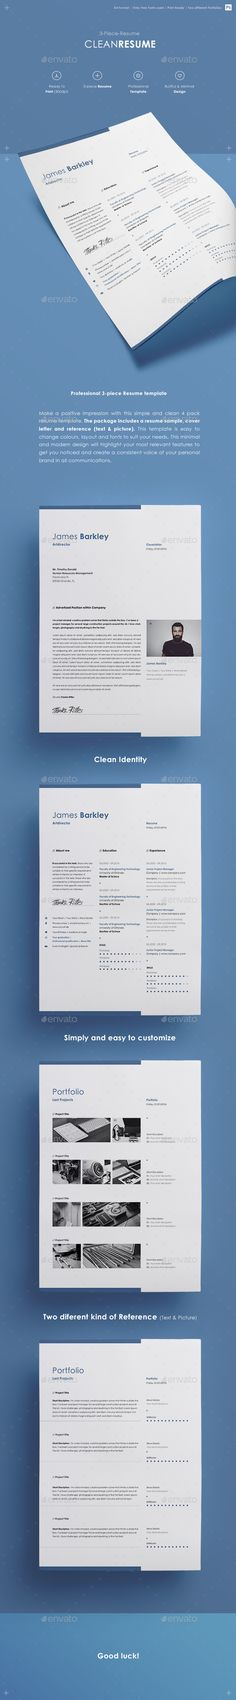 #Resume  - Resumes #Stationery Download here: https://graphicriver.net/item/resume-/14941950?ref=alena994